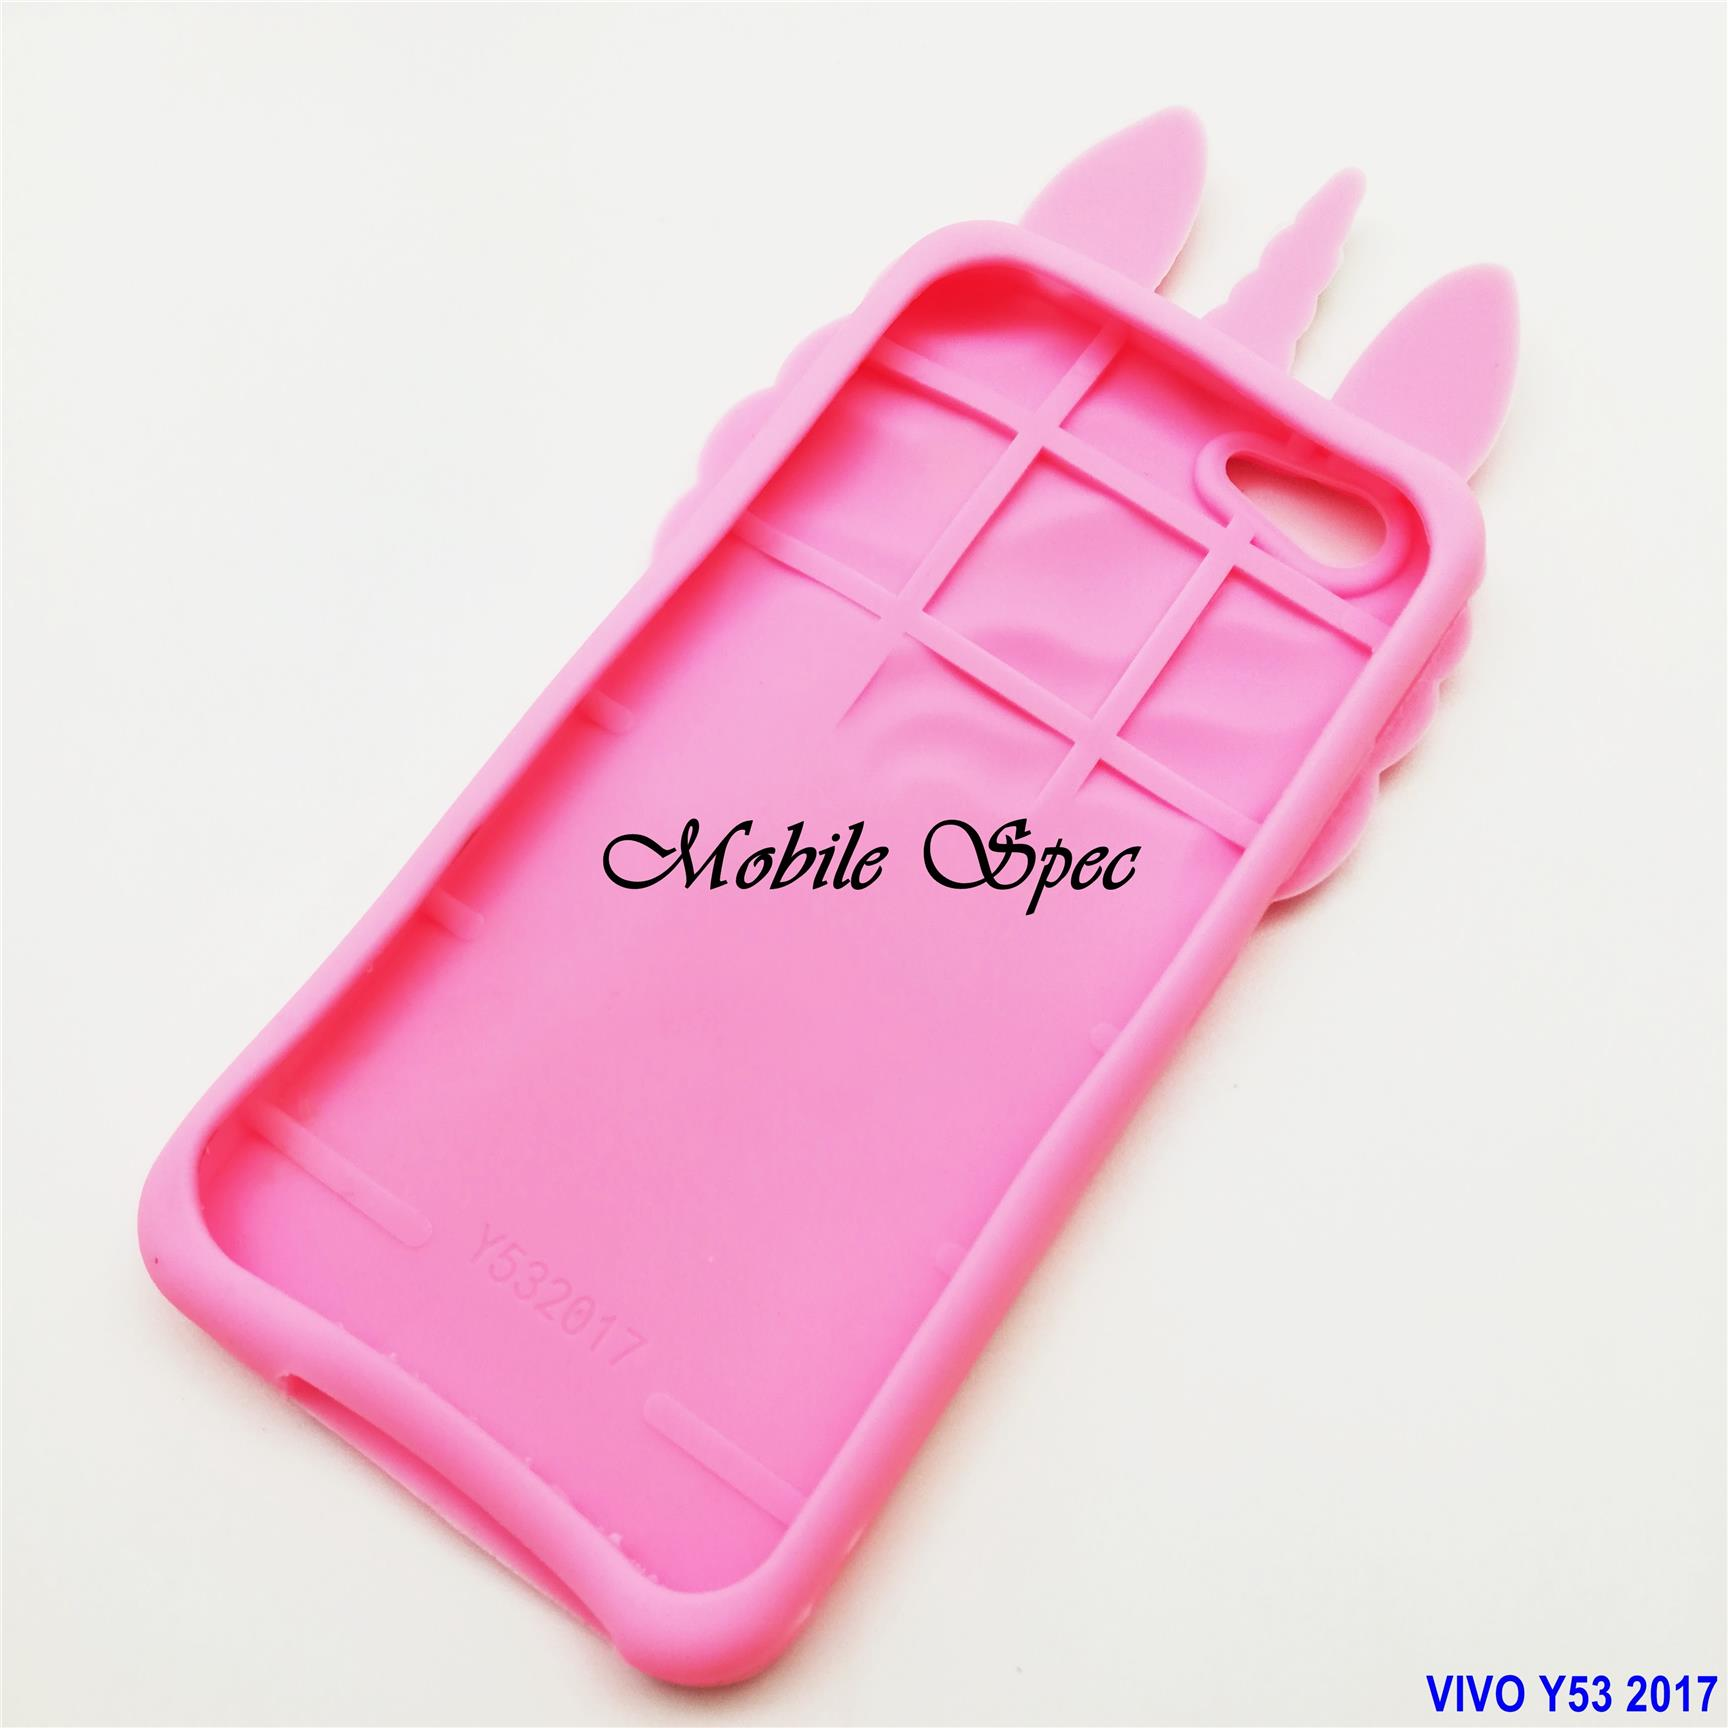 Vivo Y53 2017 Unicorn Soft Silicone Back Cover Case